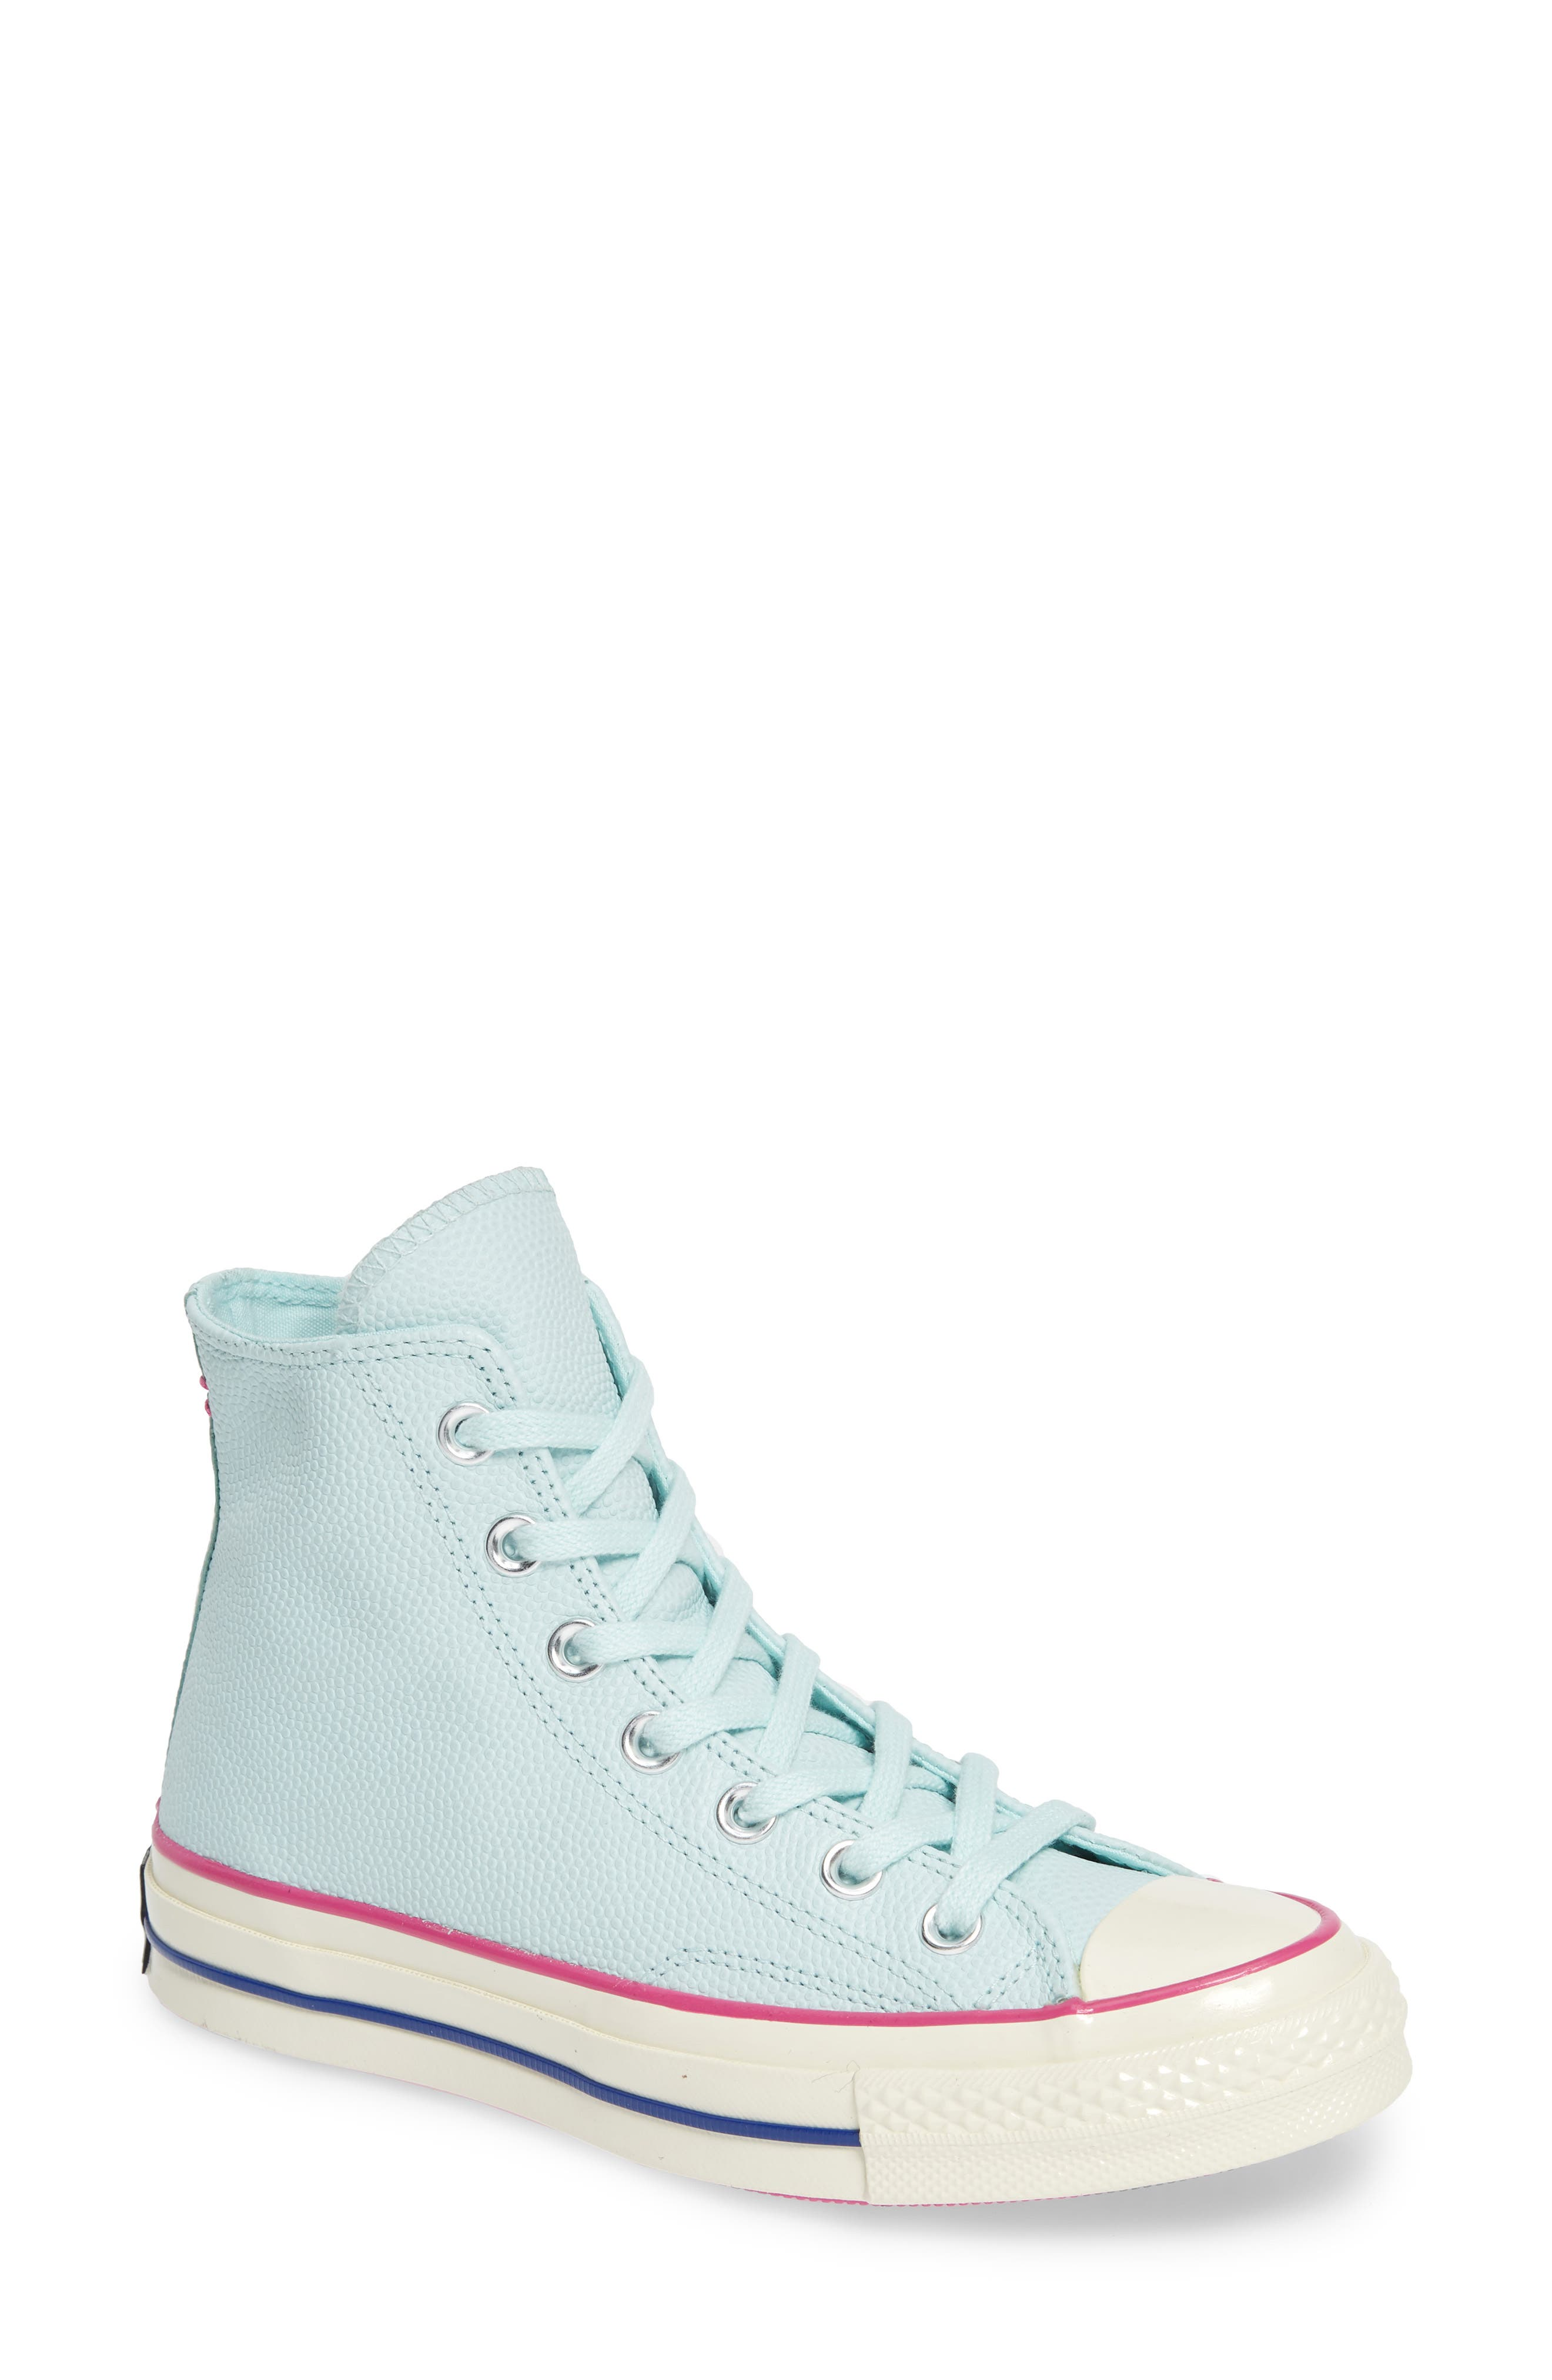 Converse Chuck Taylor All Star 70 High Top Leather Sneaker, Blue/green